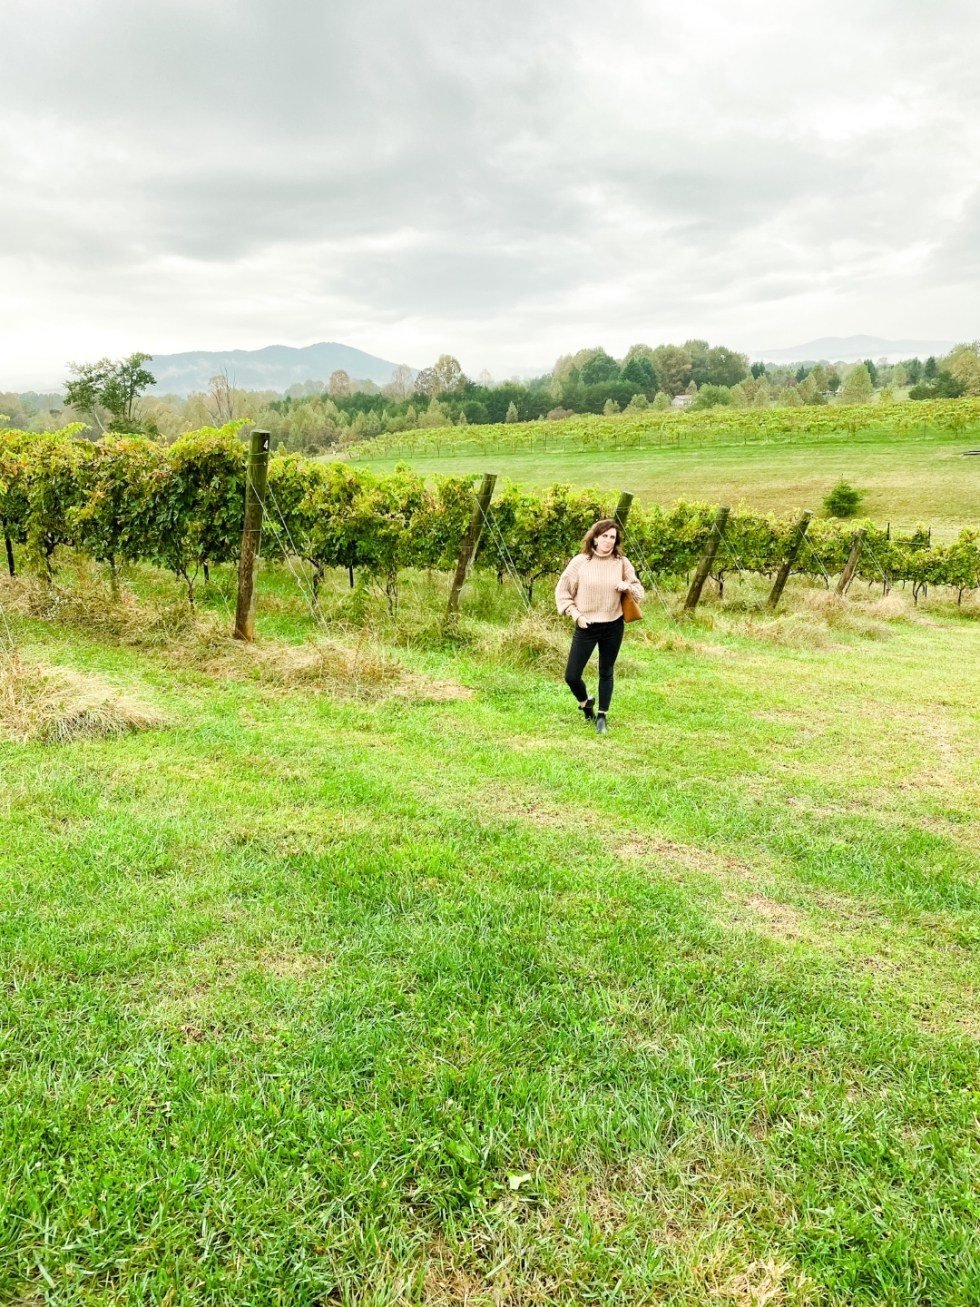 Western NC Wineries: 6 Wineries to Visit During your Next Girls' Weekend - I'm Fixin' To - @mbg0112 |Western NC Wineries by popular NC blog, I'm Fixin' To: image of a woman standing outside at Round Peak Vineyards.